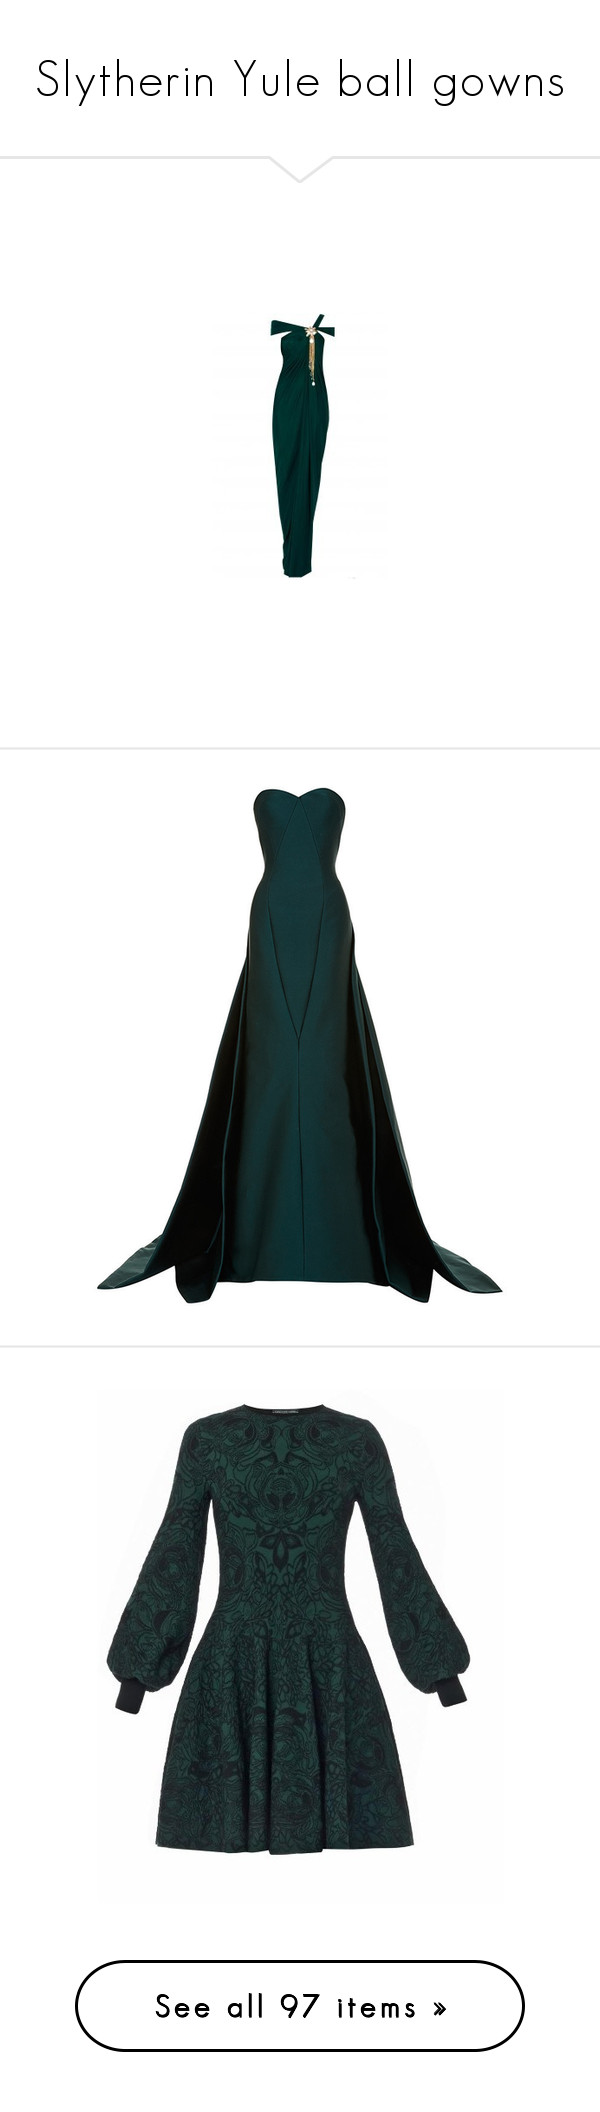 """Slytherin Yule ball gowns"" by weeby ❤ liked on Polyvore featuring dresses, gowns, gown, long dresses, draped evening gown, white drape dress, long white evening dress, white dress, draped dress and emerald gown"